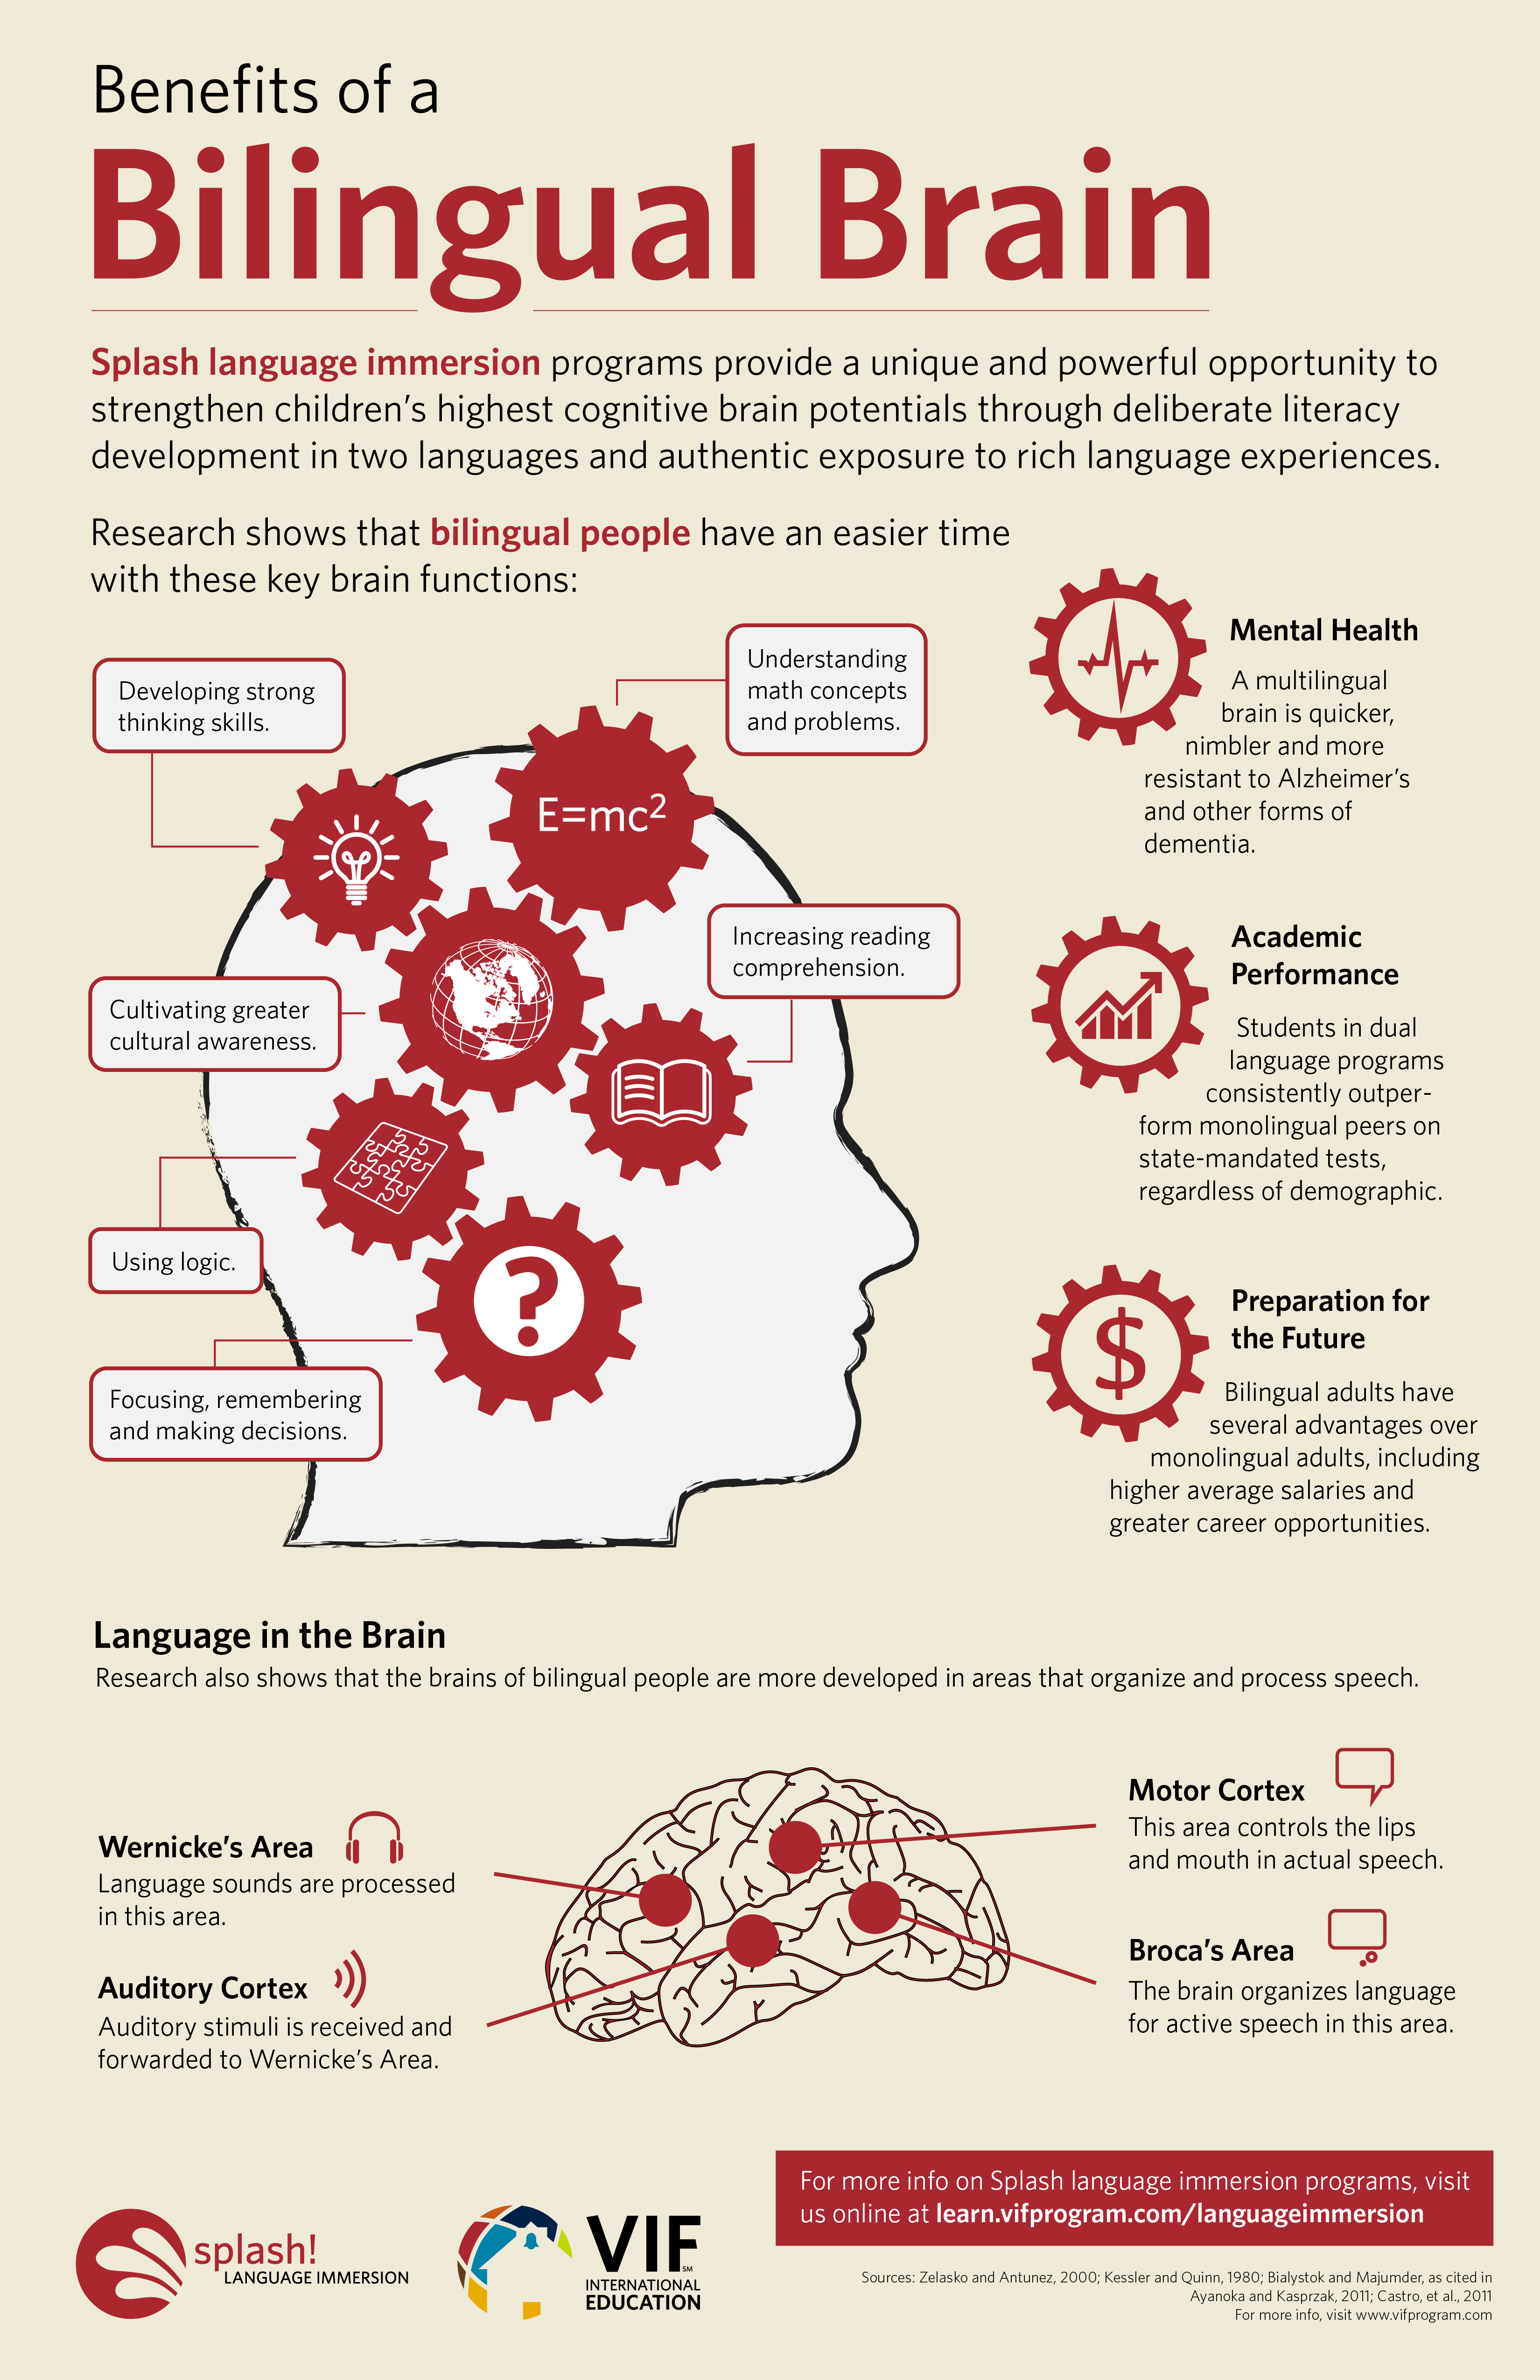 benefits of a bilingual brain infographic - e-learning infographics